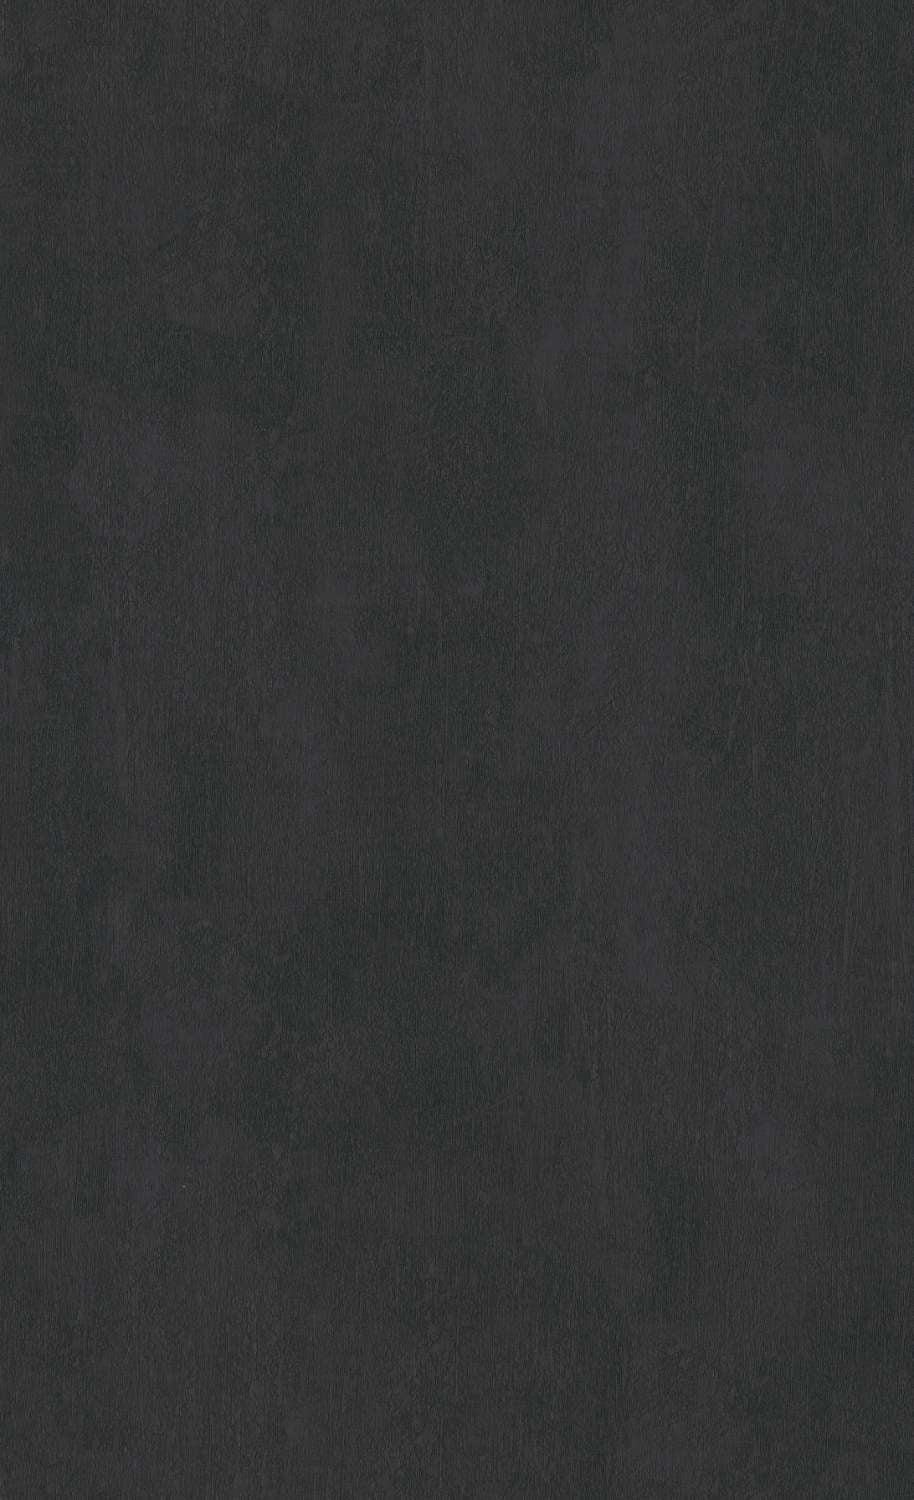 Plain Black Commercial Wallpaper C7340 | Commercial and Hospitality Wallpaper